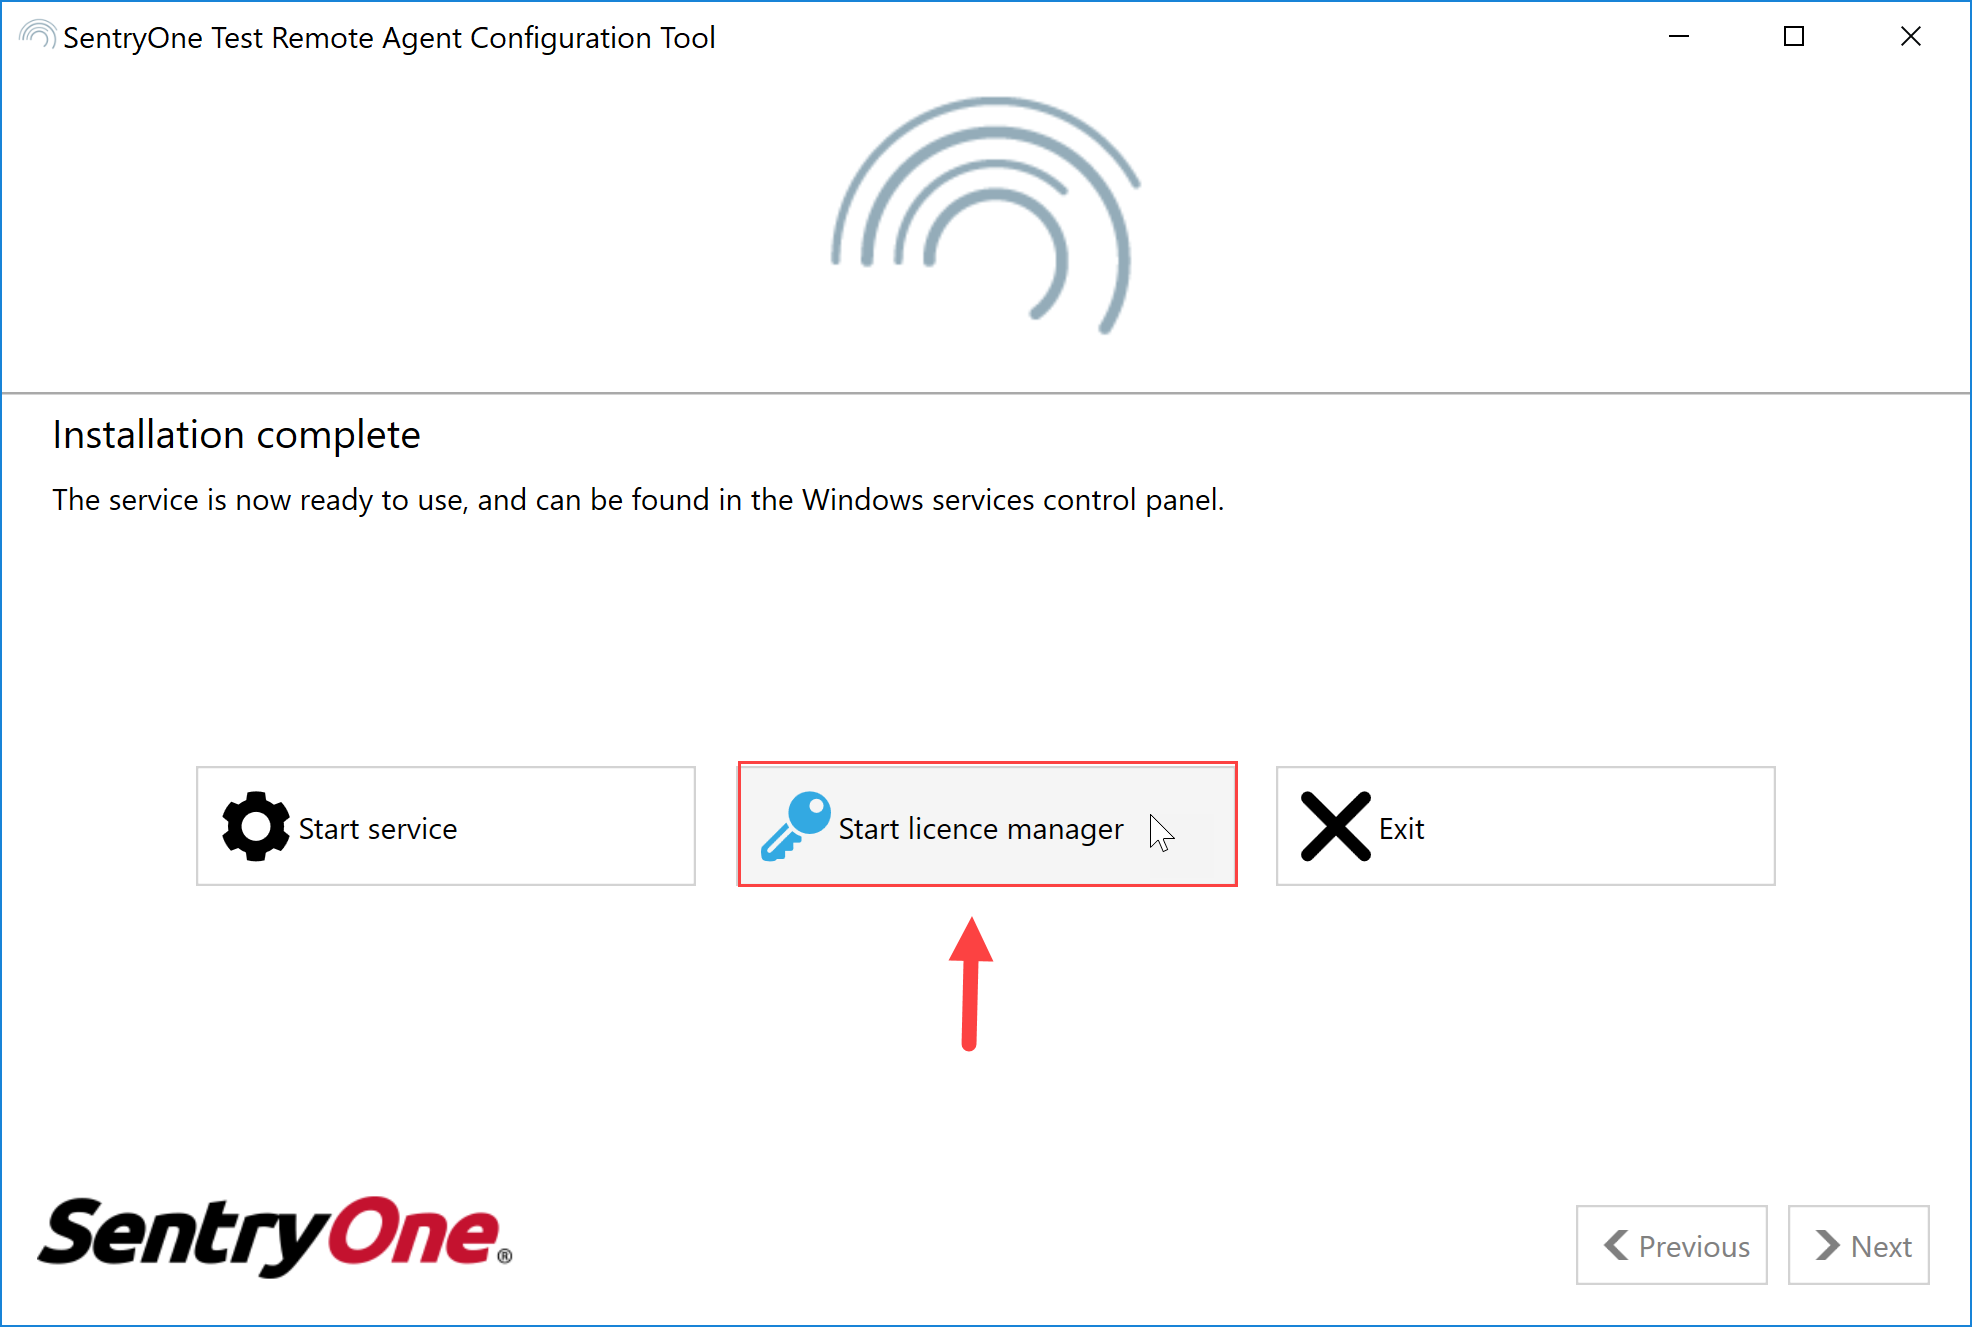 SentryOne Test Remote Agent Configuration Tool Start license manager